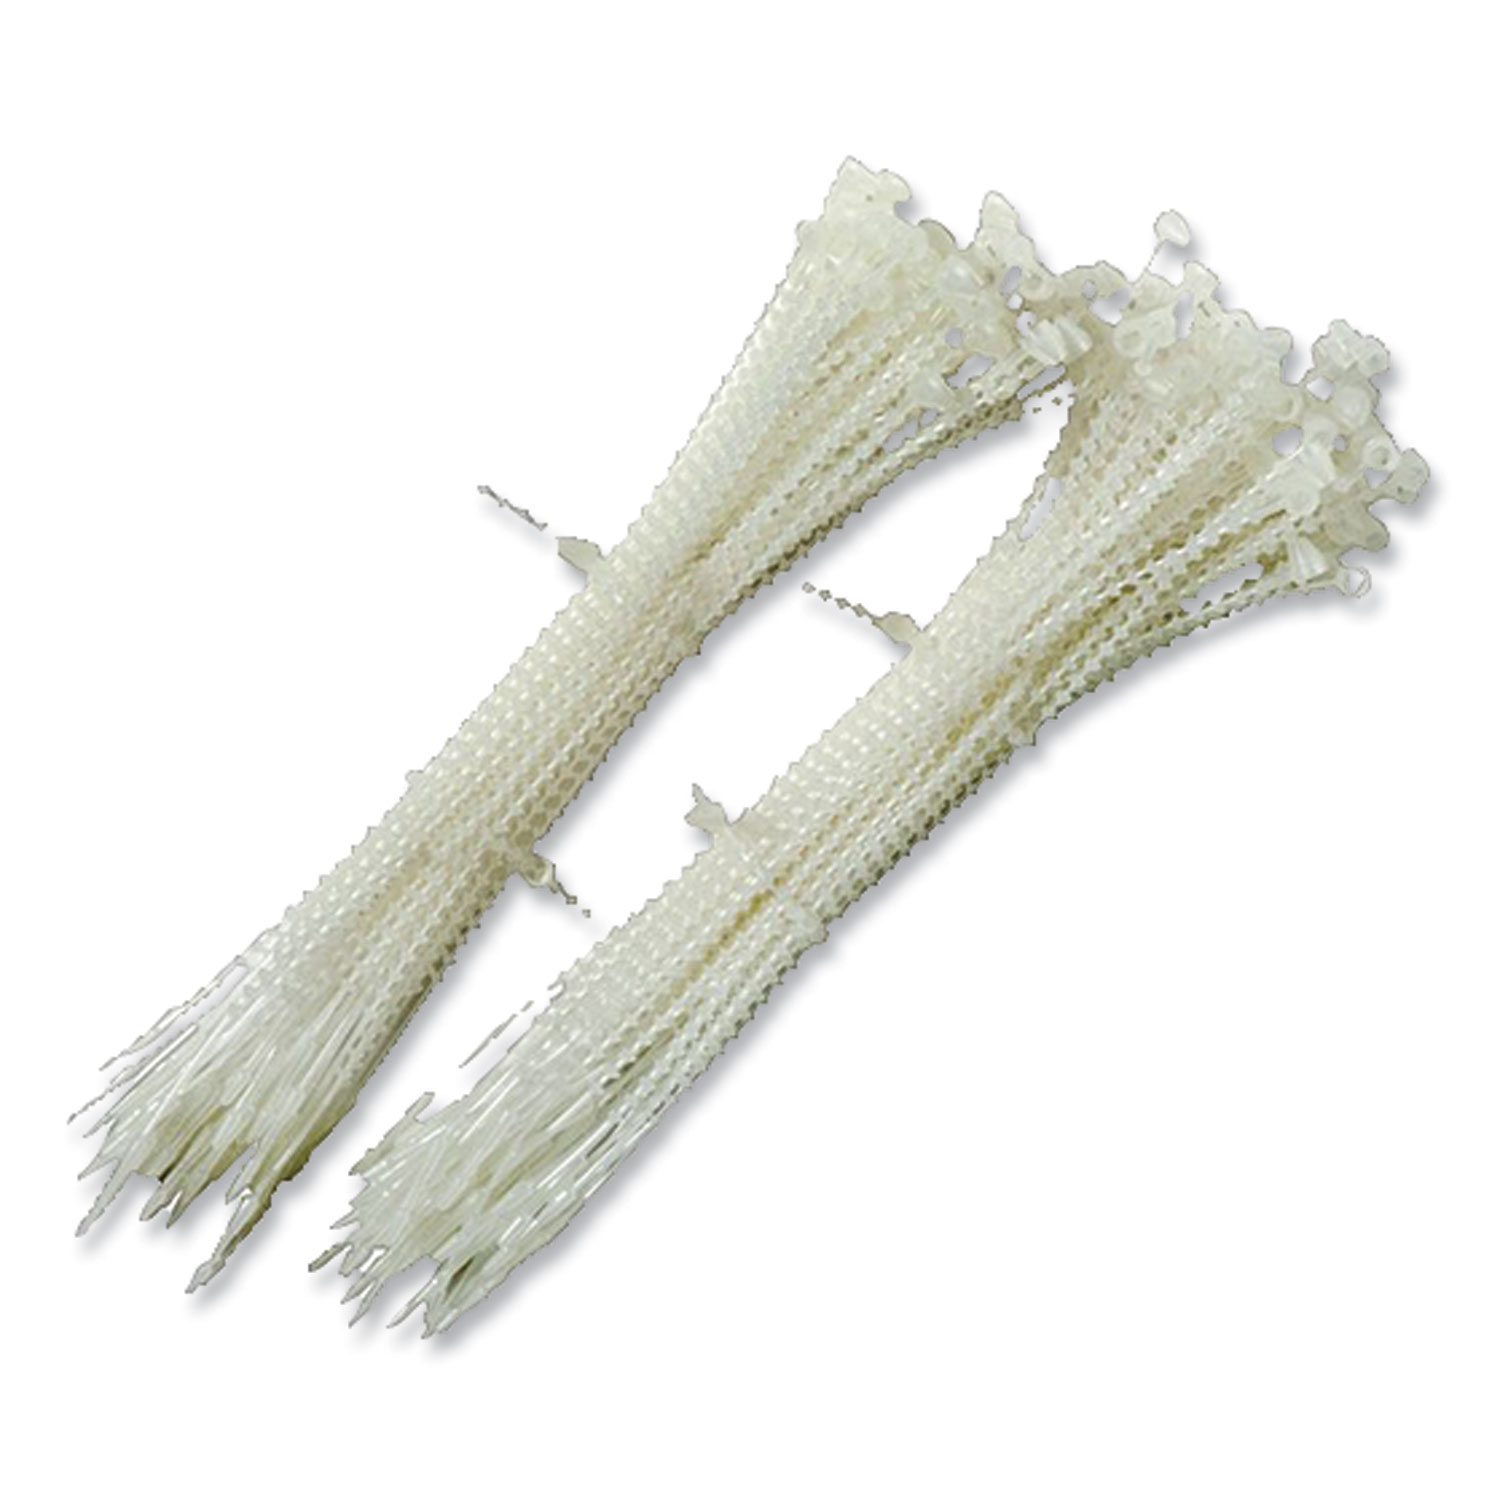 Avery® Security Ties, 5, Natural, 5000/Carton